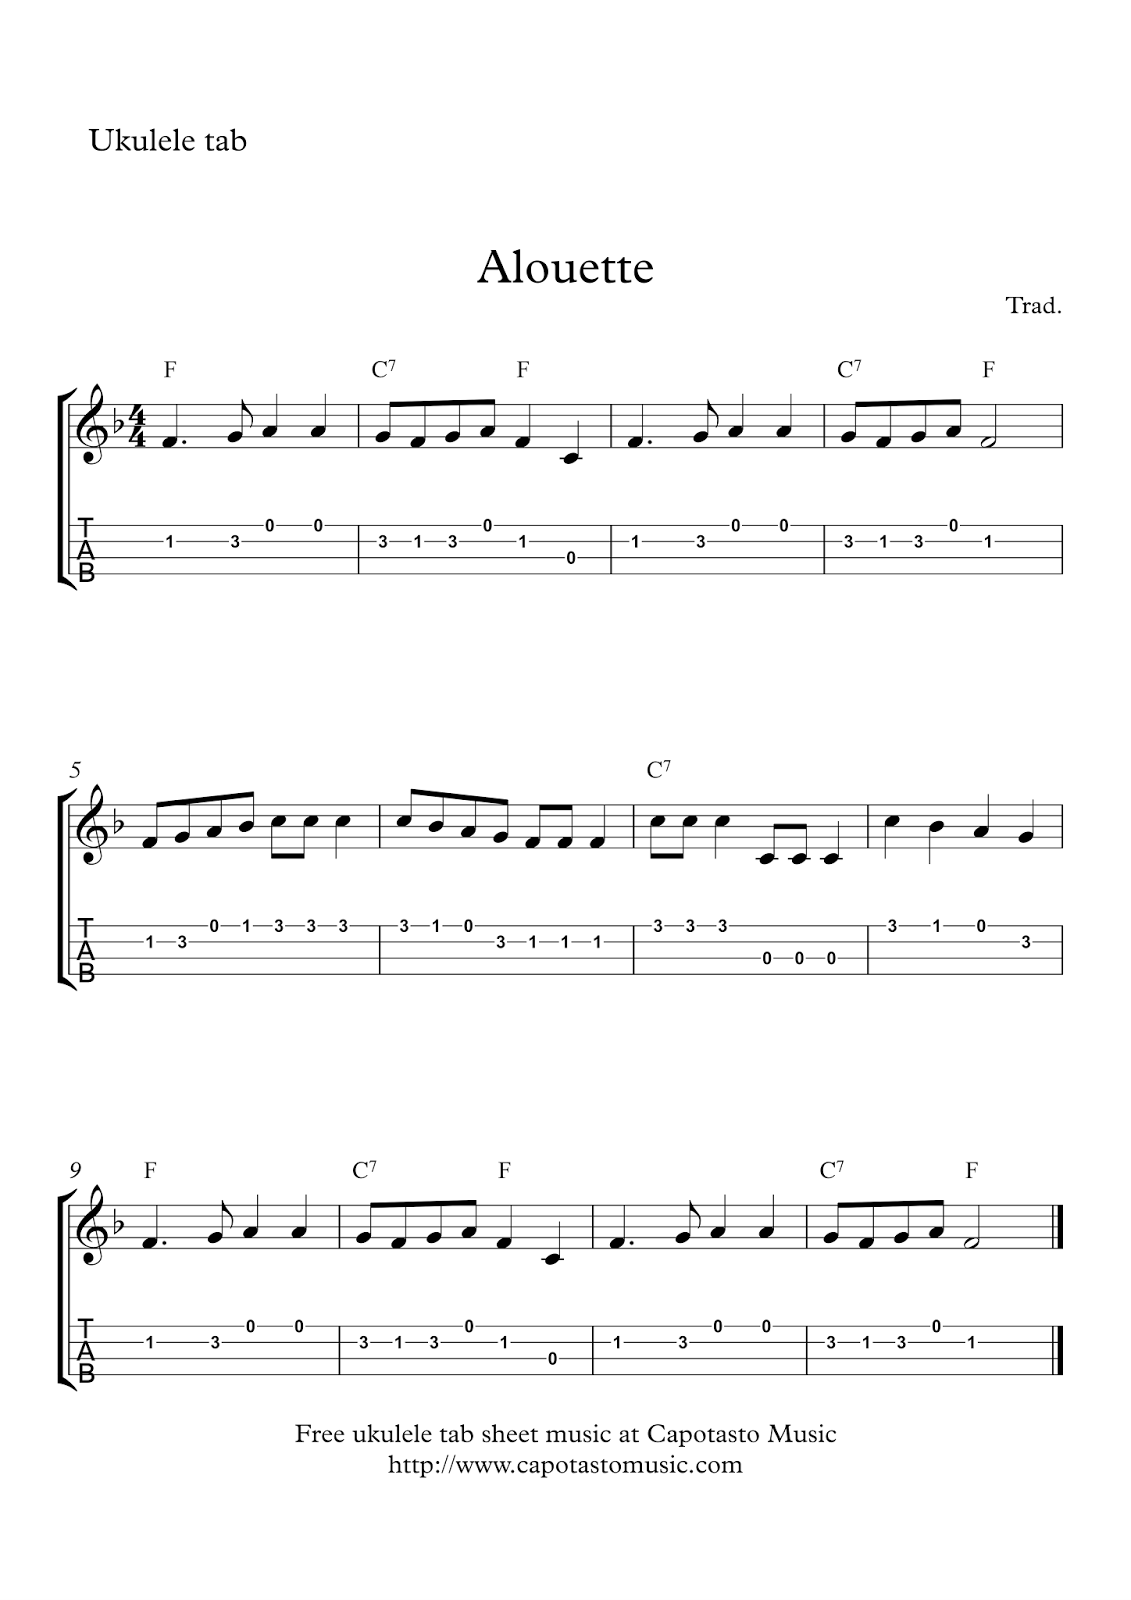 Pin by Ashley Gaddy on ukulele | Ukulele tabs, Ukulele, Music